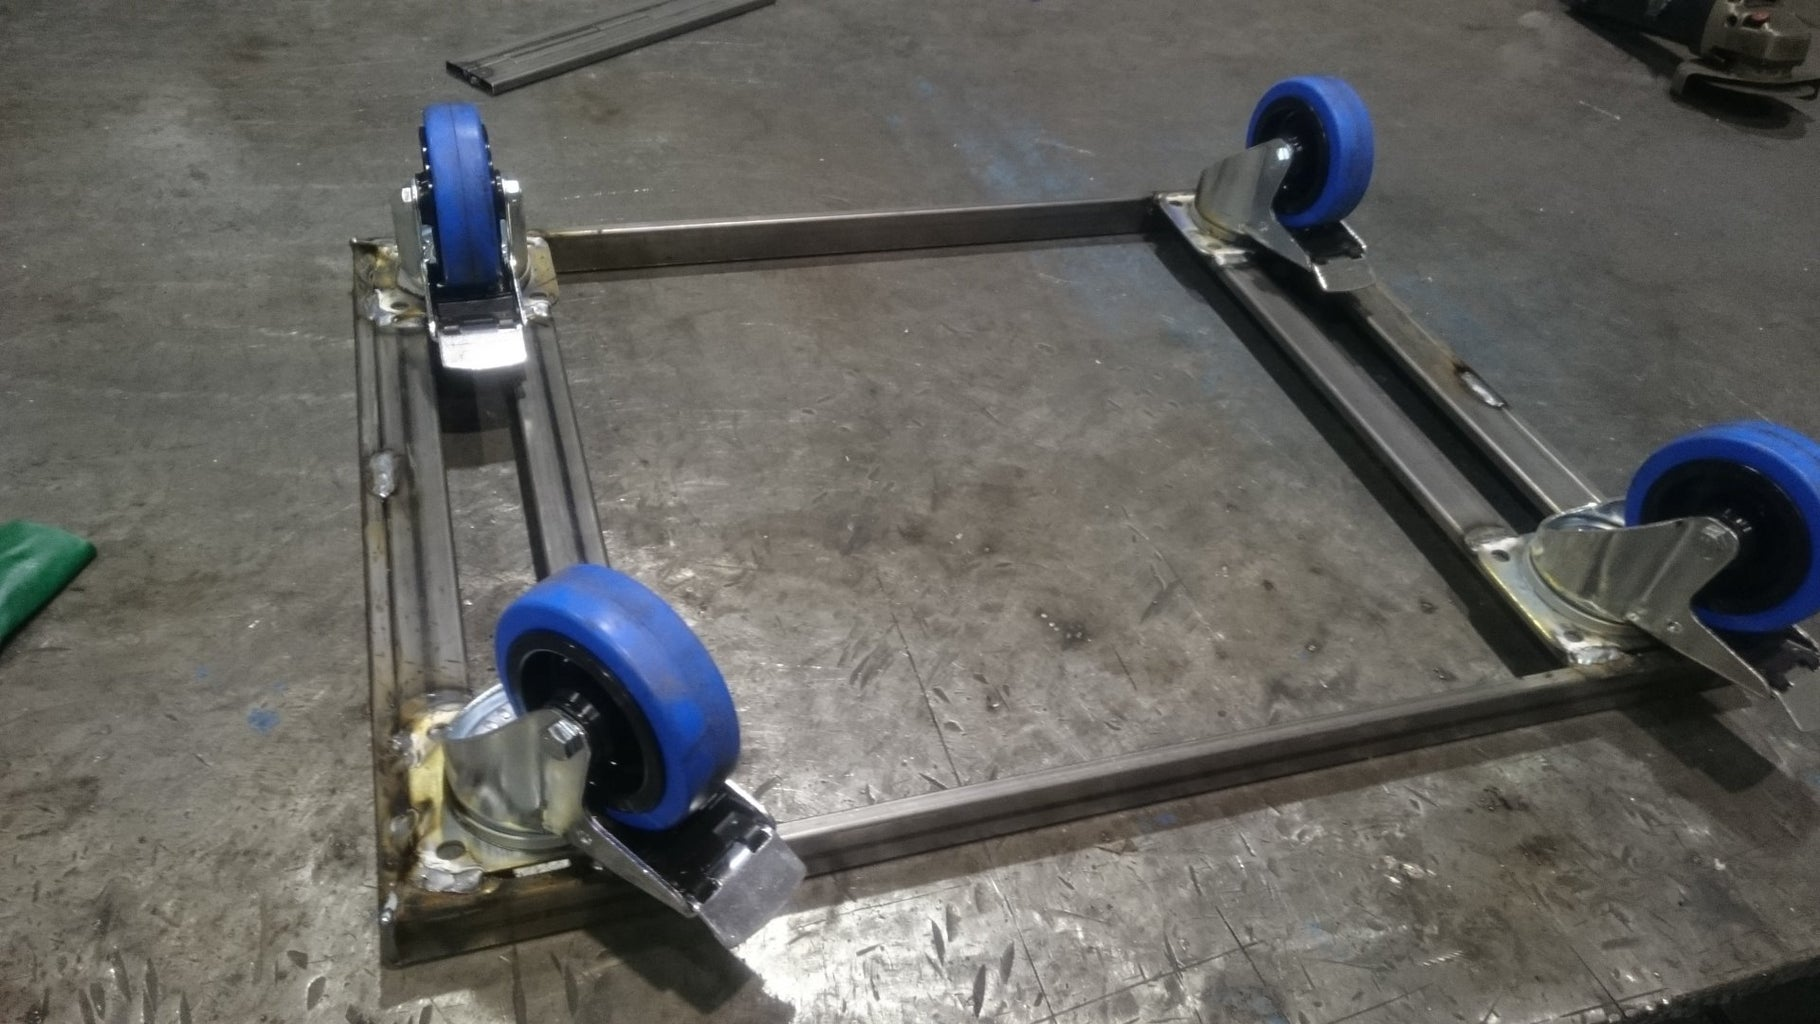 A Dolly Is Welded From 30x10x2 Metal Tubes and Flightcase Wheels